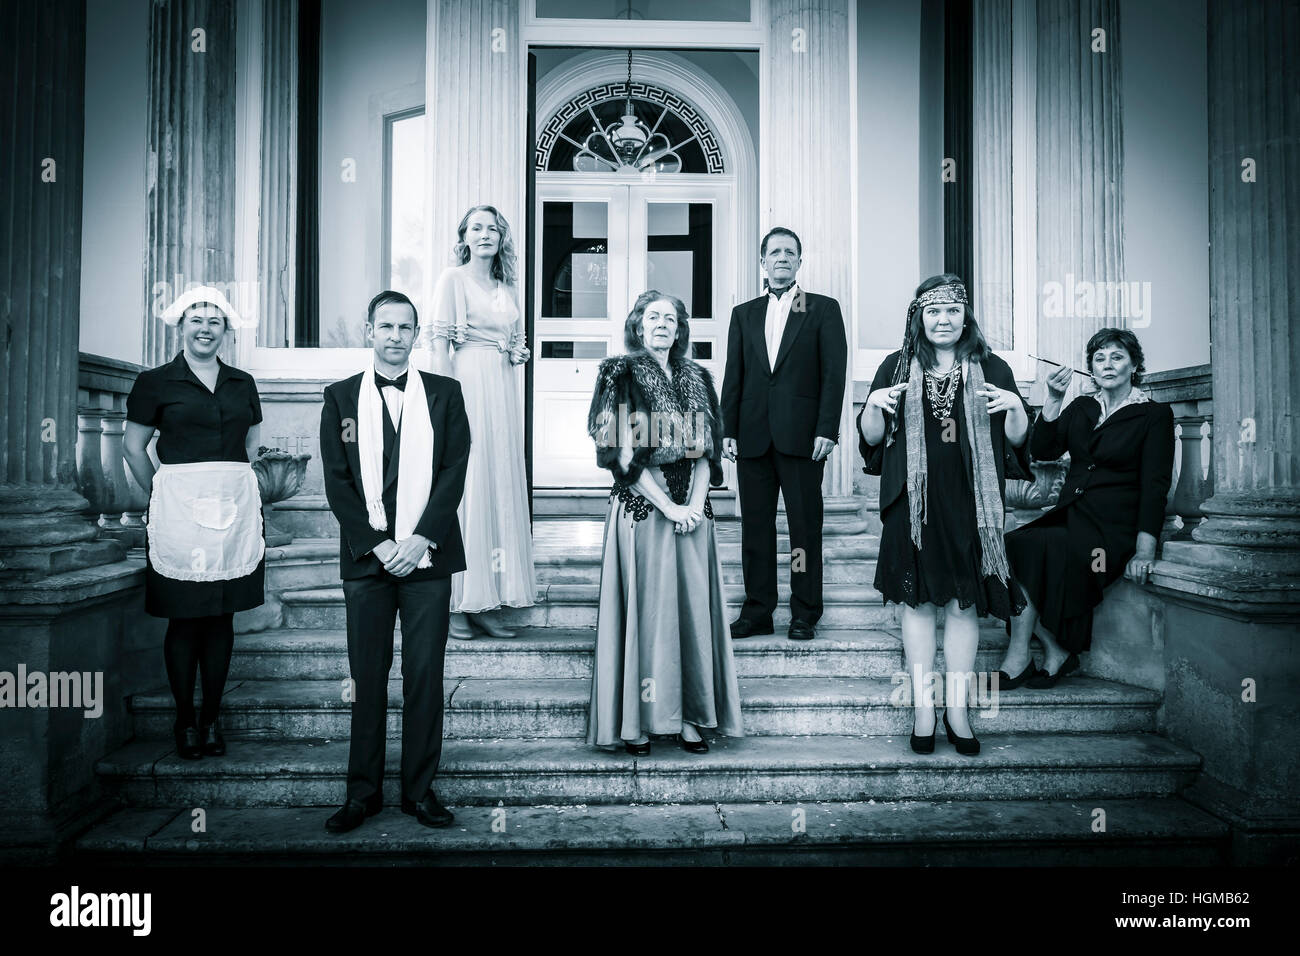 posh english family and servant on steps of stately home - Stock Image